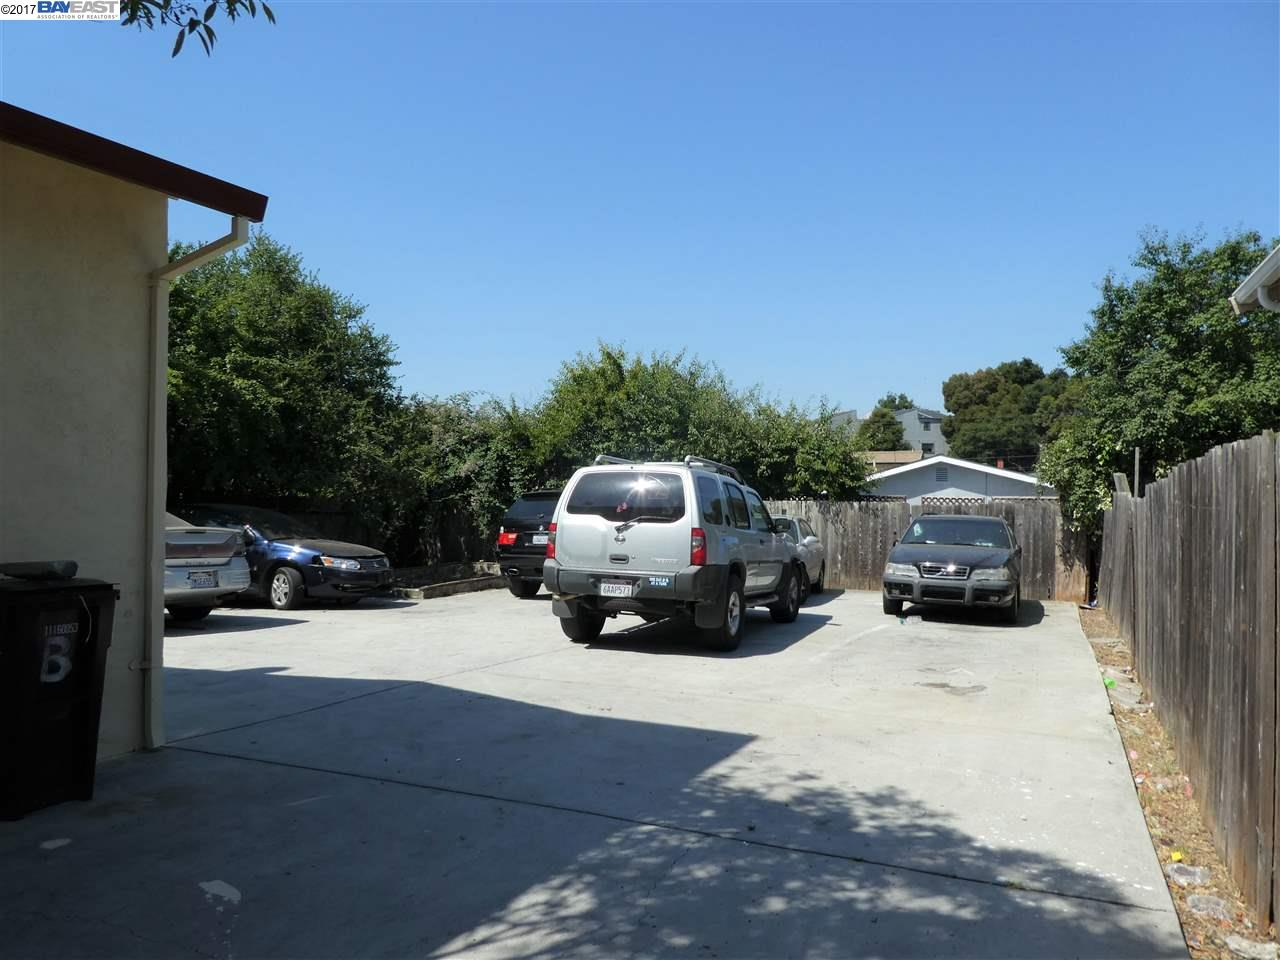 Additional photo for property listing at 5037 Congress Avenue 5037 Congress Avenue Oakland, カリフォルニア 94601 アメリカ合衆国